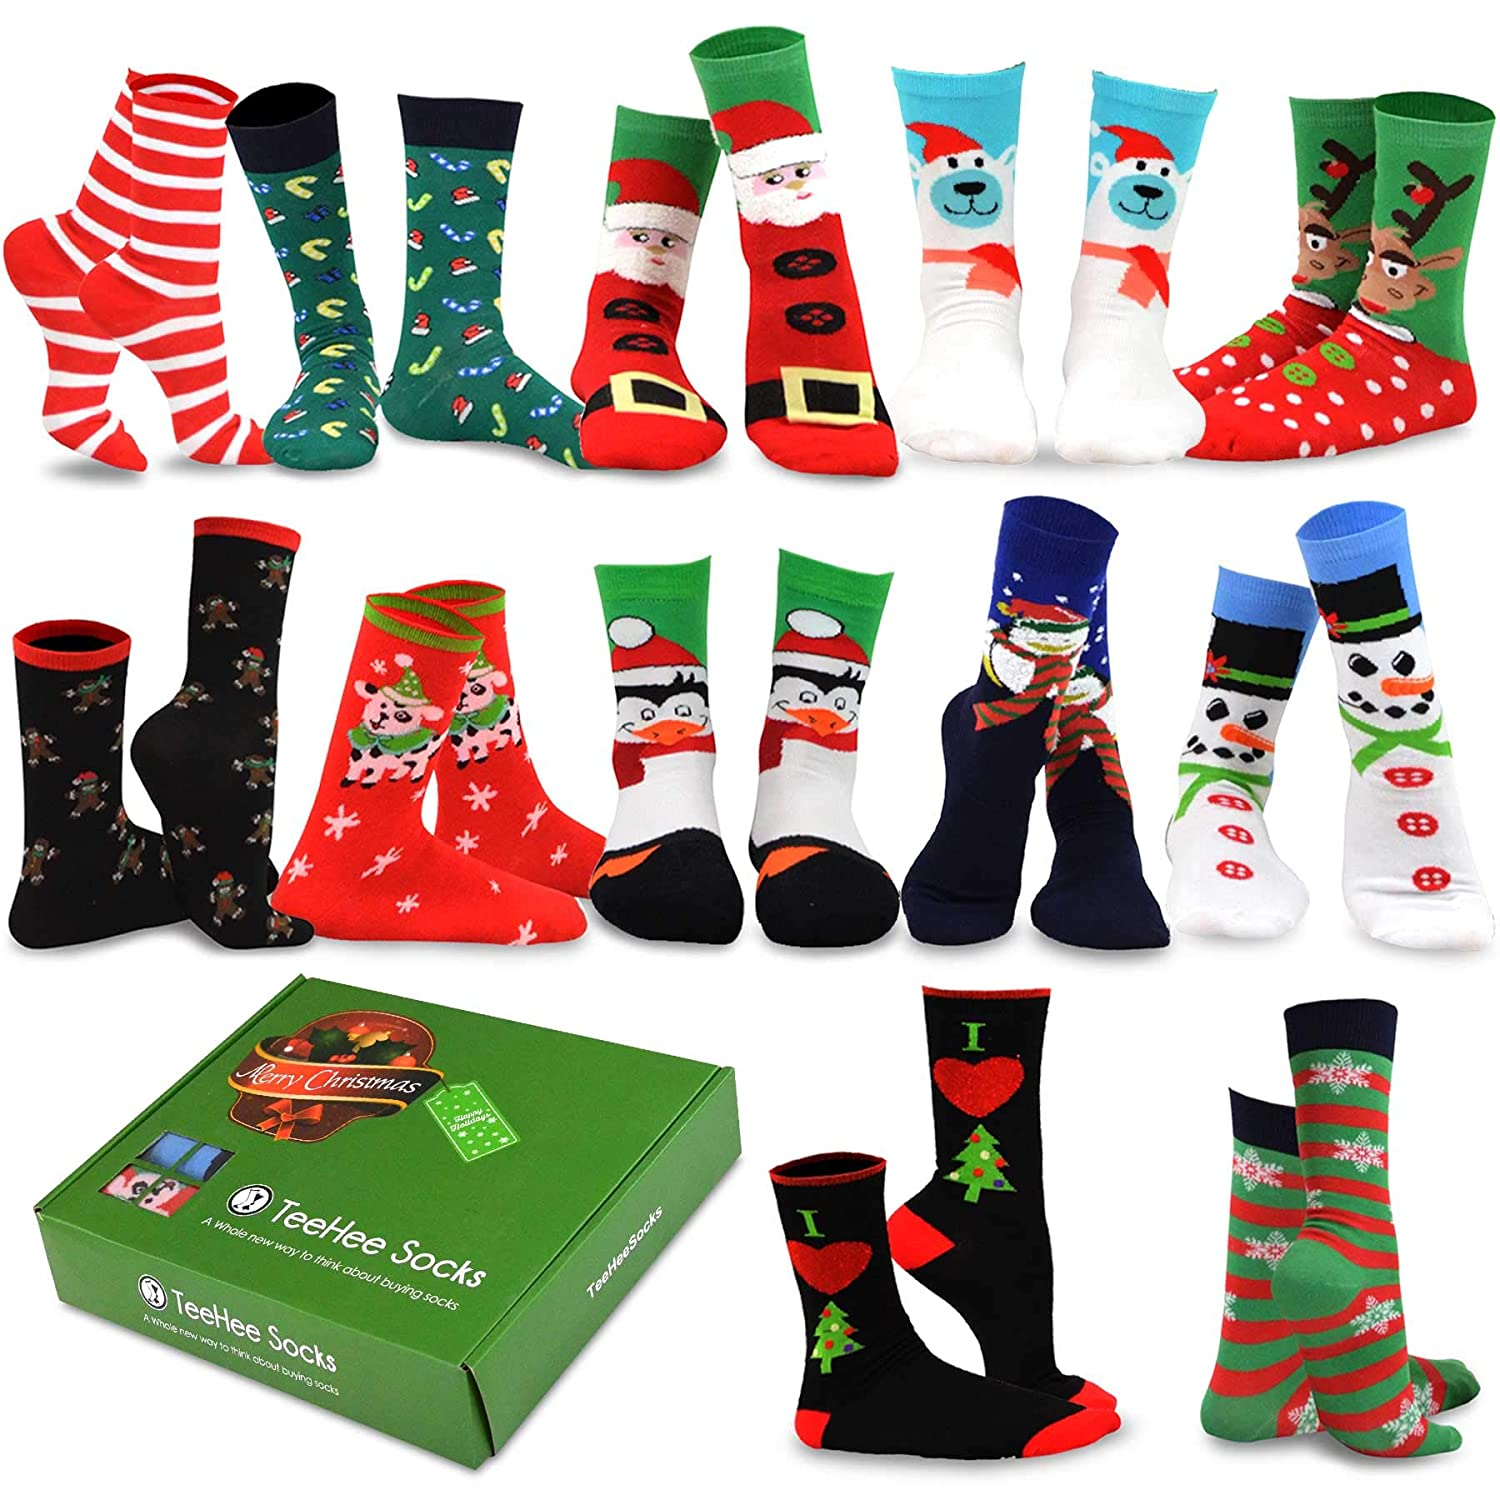 TeeHee Christmas Holiday 12-Pack Gift Socks for Women with Gift Box S/11890-12C07 9-11